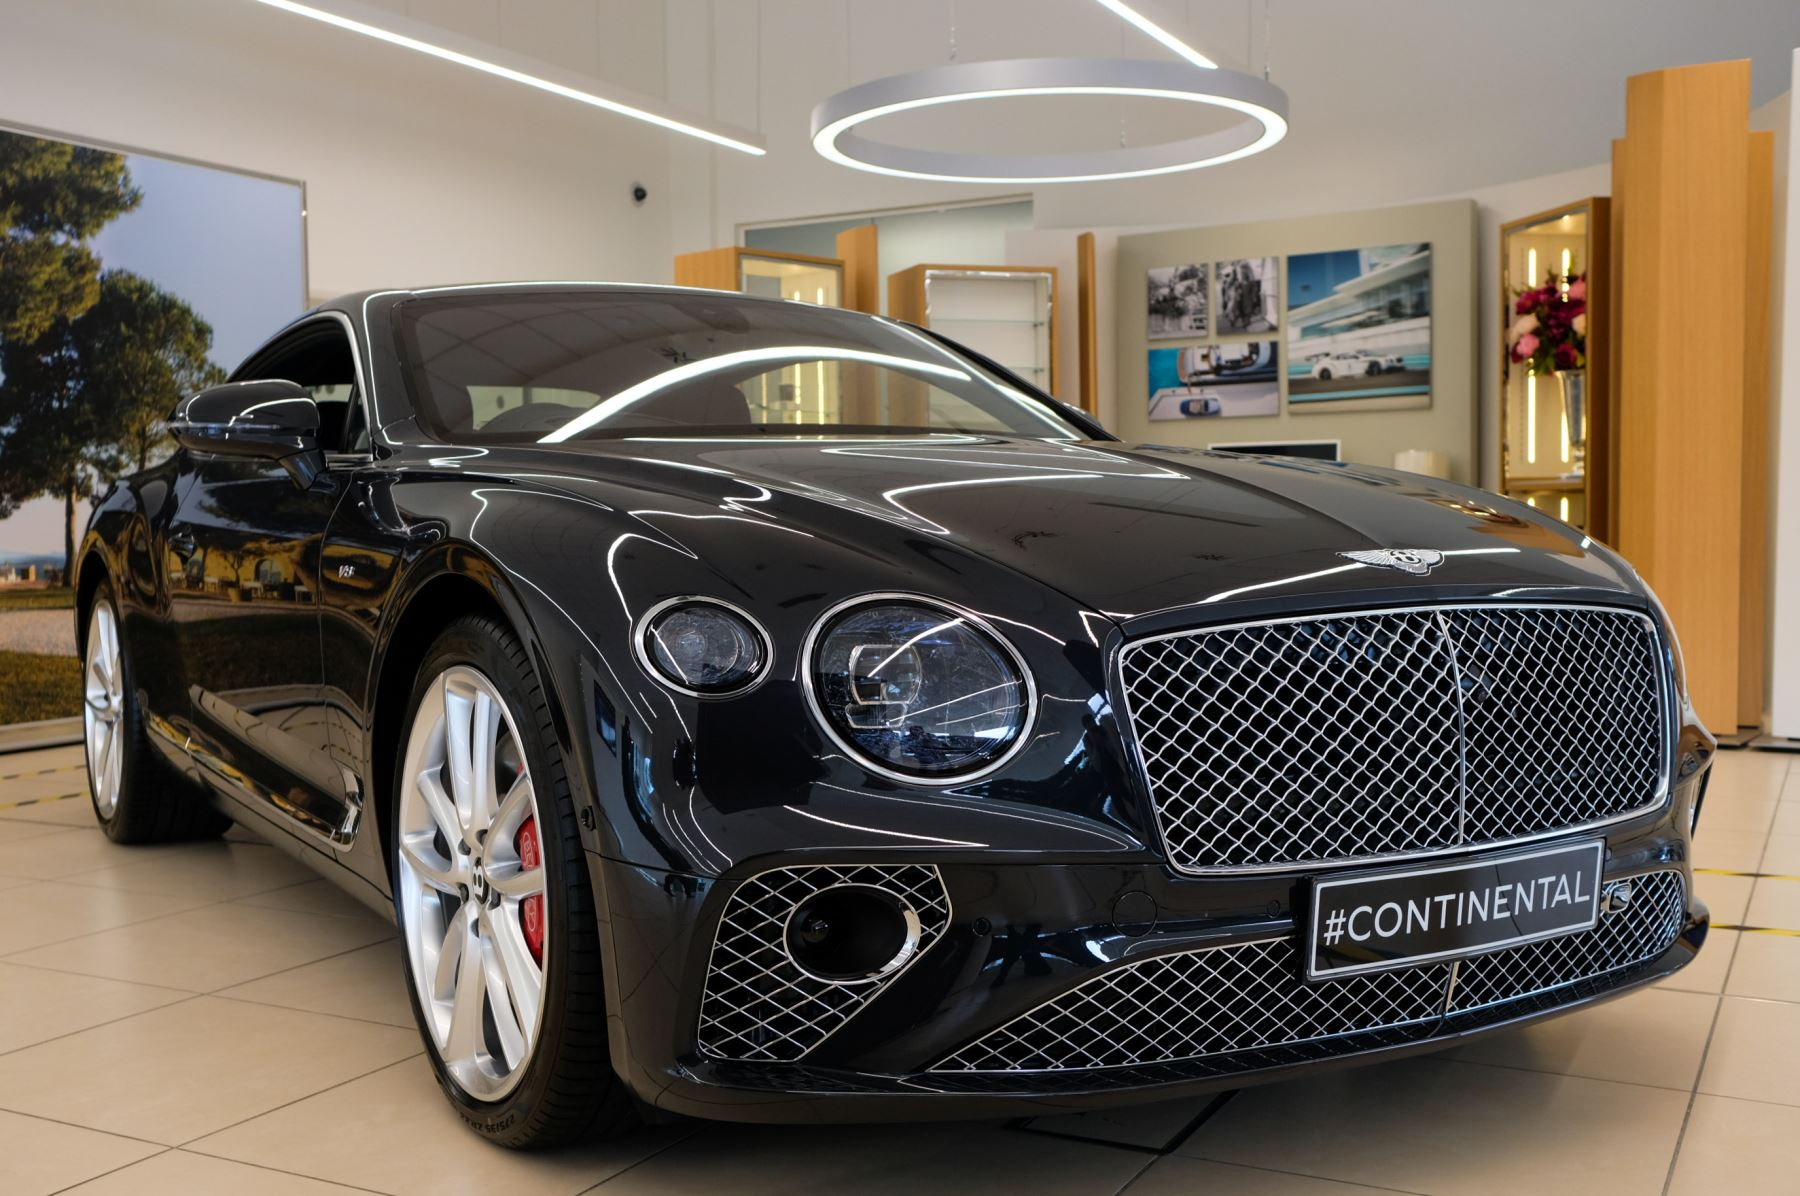 Bentley Continental GT 4.0 V8 2dr Auto Automatic Coupe (2021)